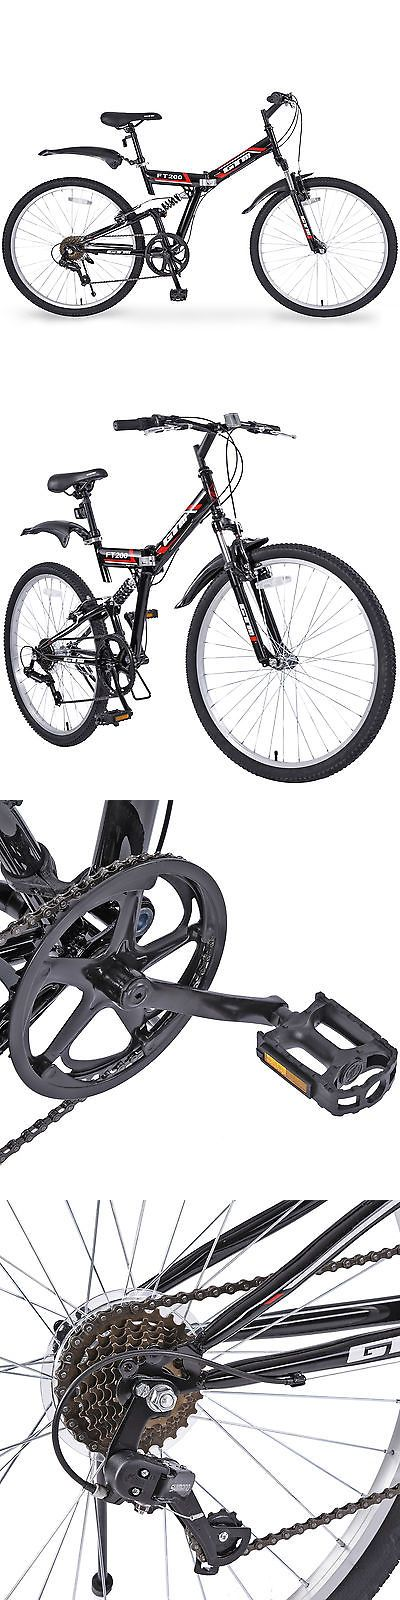 Bicycles 177831: 7 Speed Folding Mountain Bike Black Bicycle Hybrid Shimano Suspension Sports 26 -> BUY IT NOW ONLY: $98.9 on eBay!